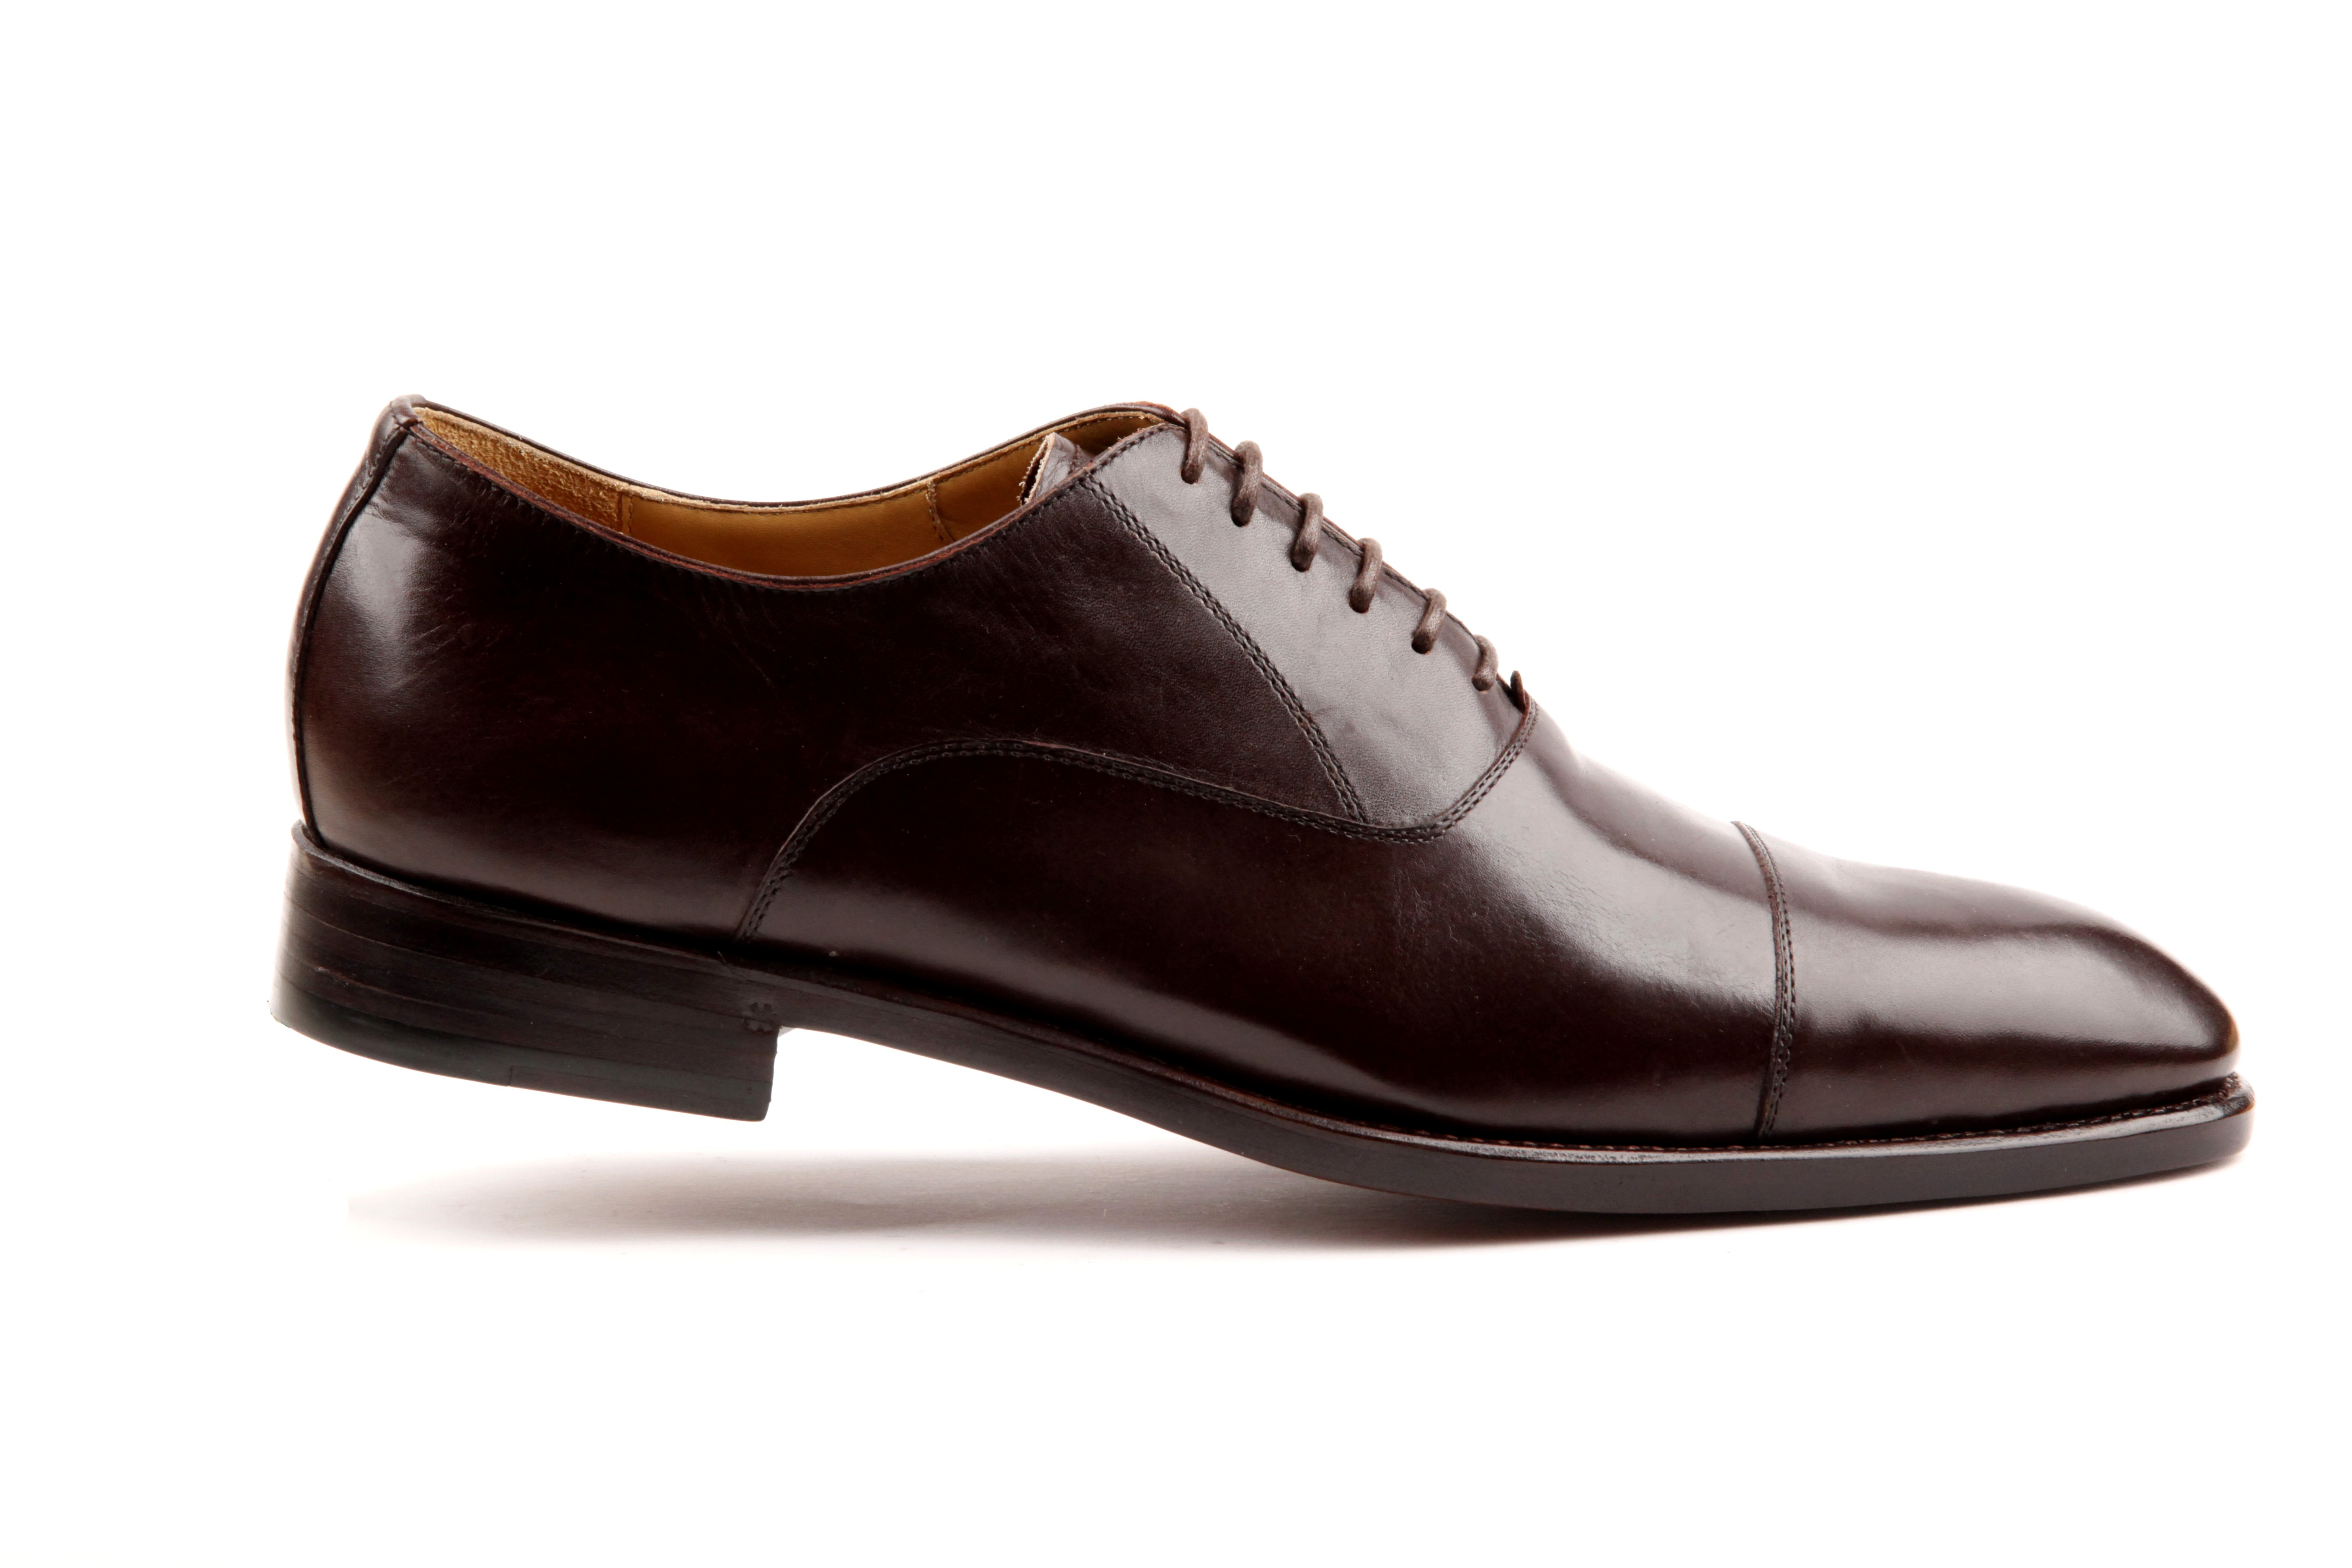 Belle chaussure homme